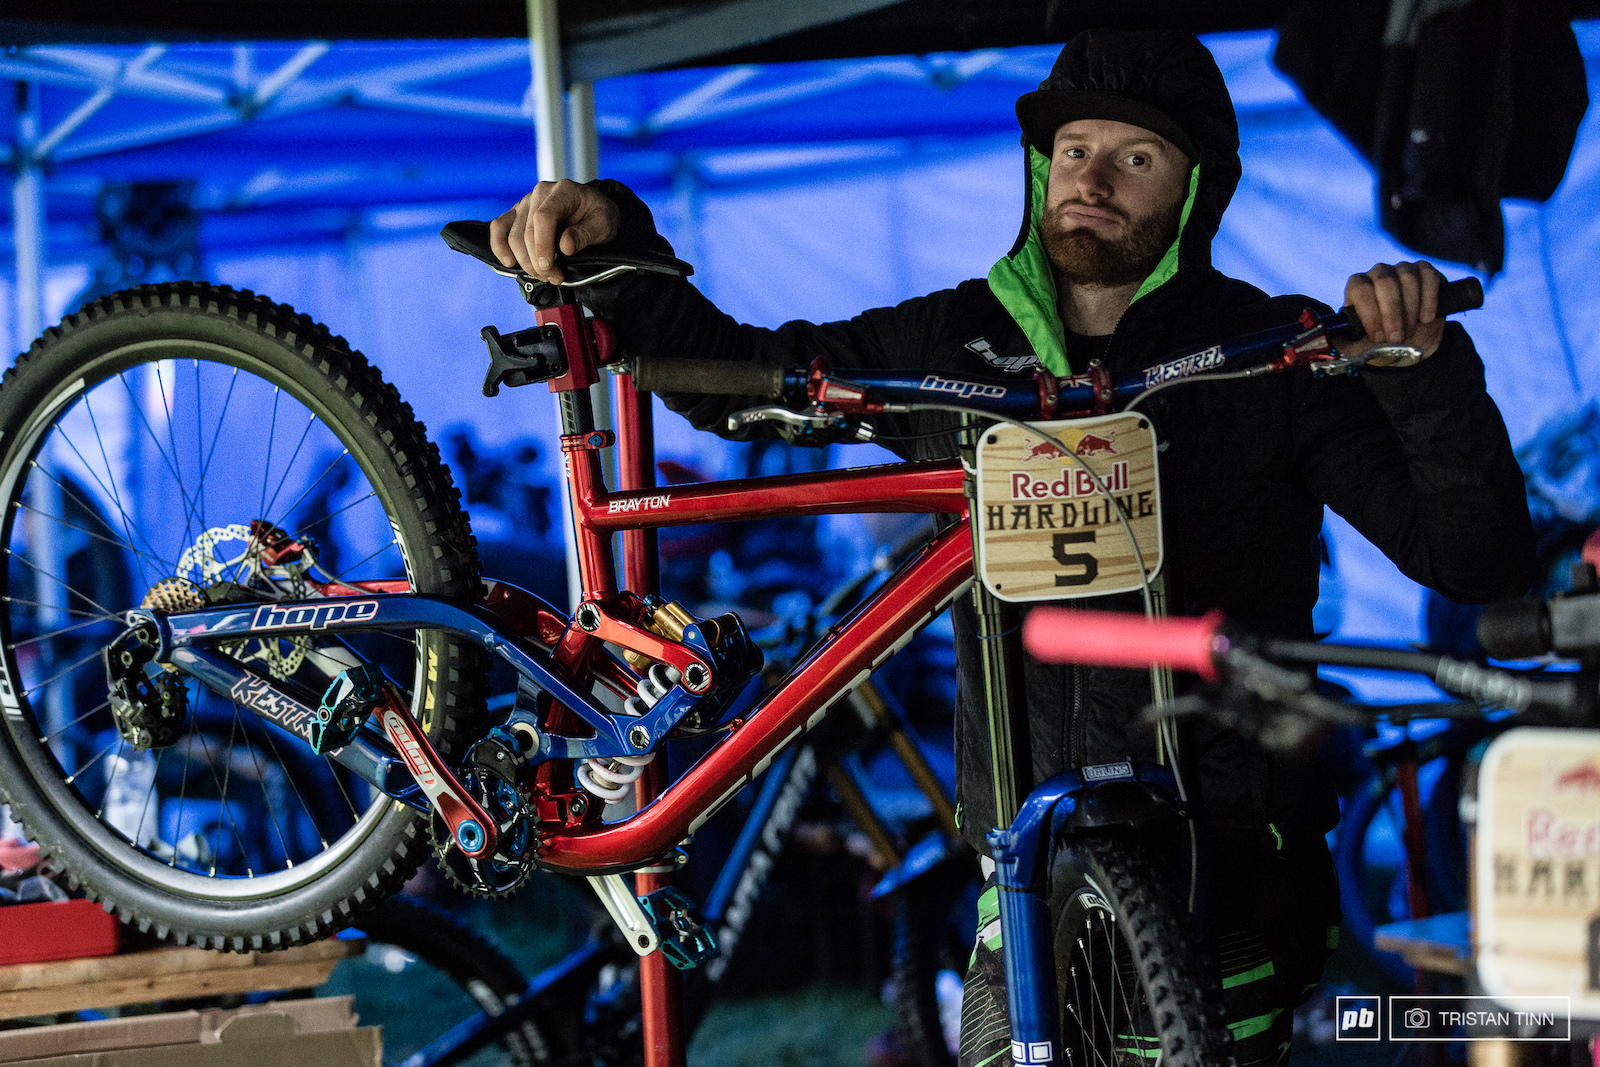 Little luck for the Kestrel since qualifying 9th at World Champs. Injury would plague him in qualifying a real shame following his near miss at Hardline glory last year.